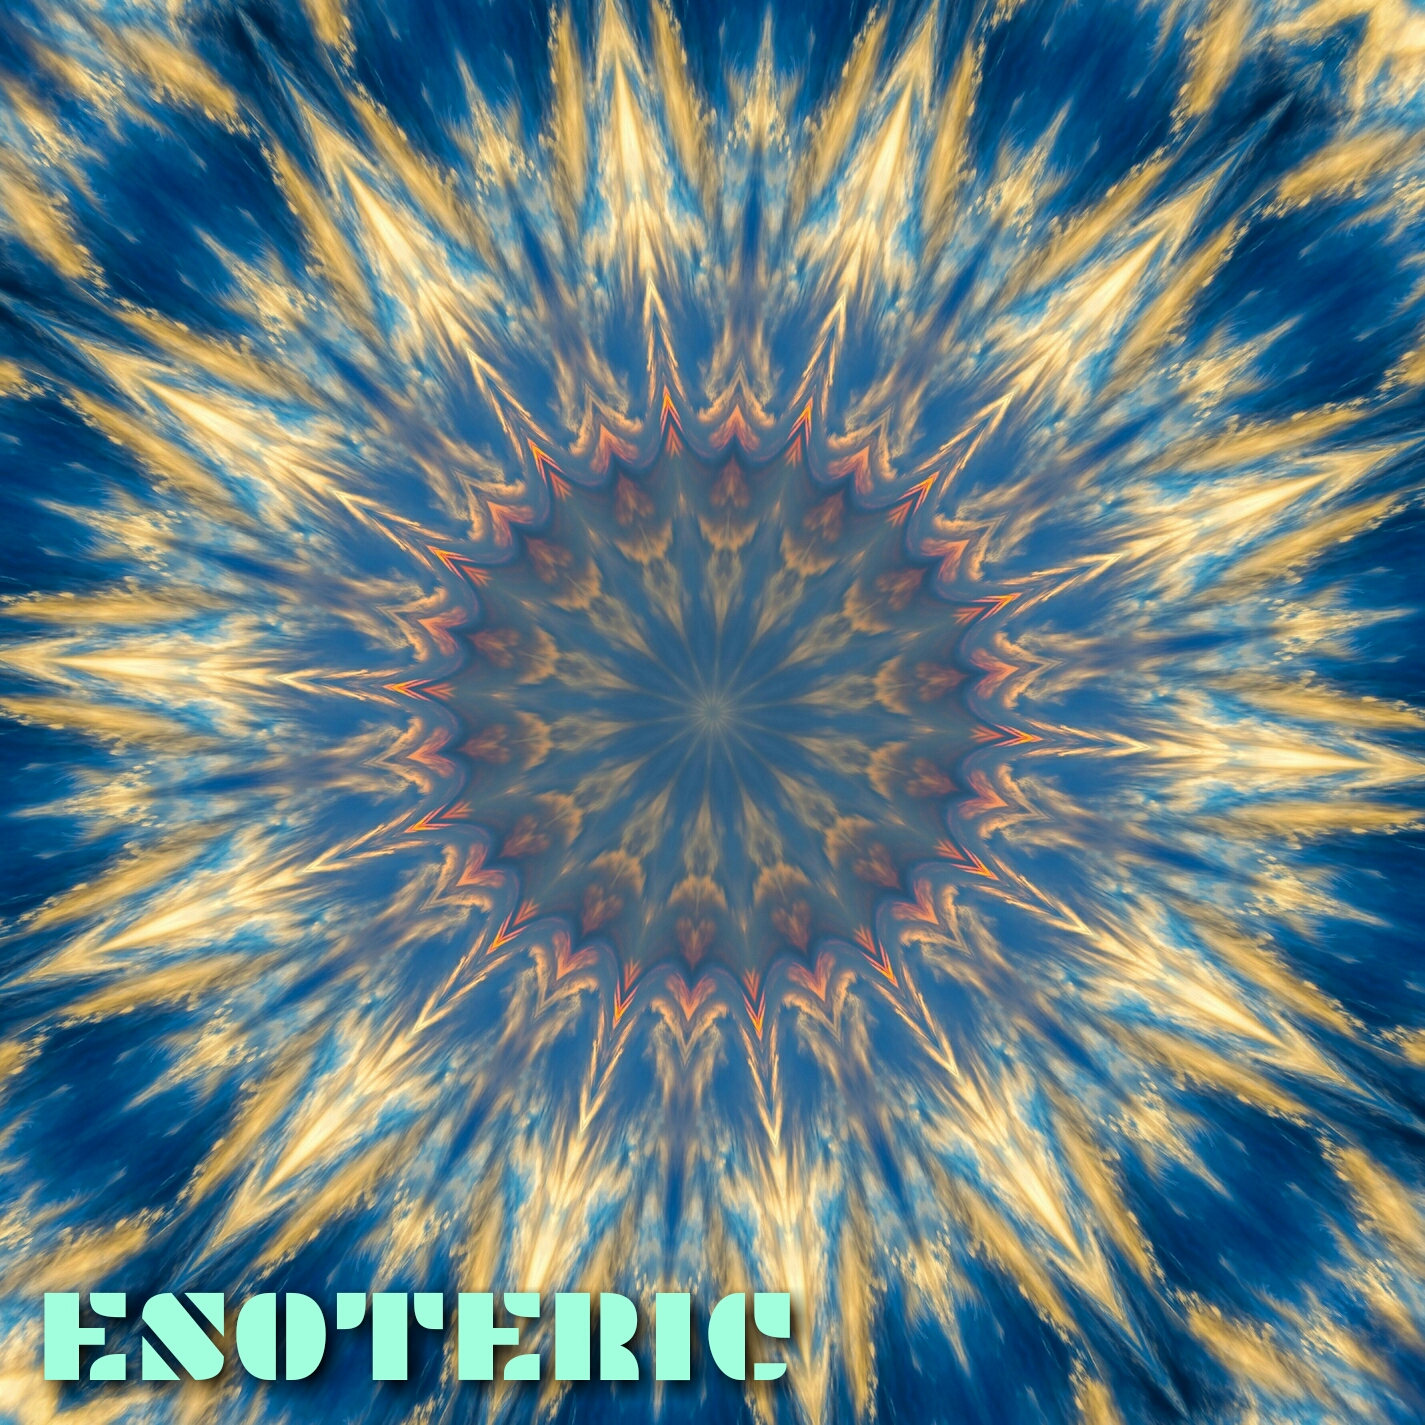 Esoteric Ambient Chillout Mp3 Music Download | Music2relax com